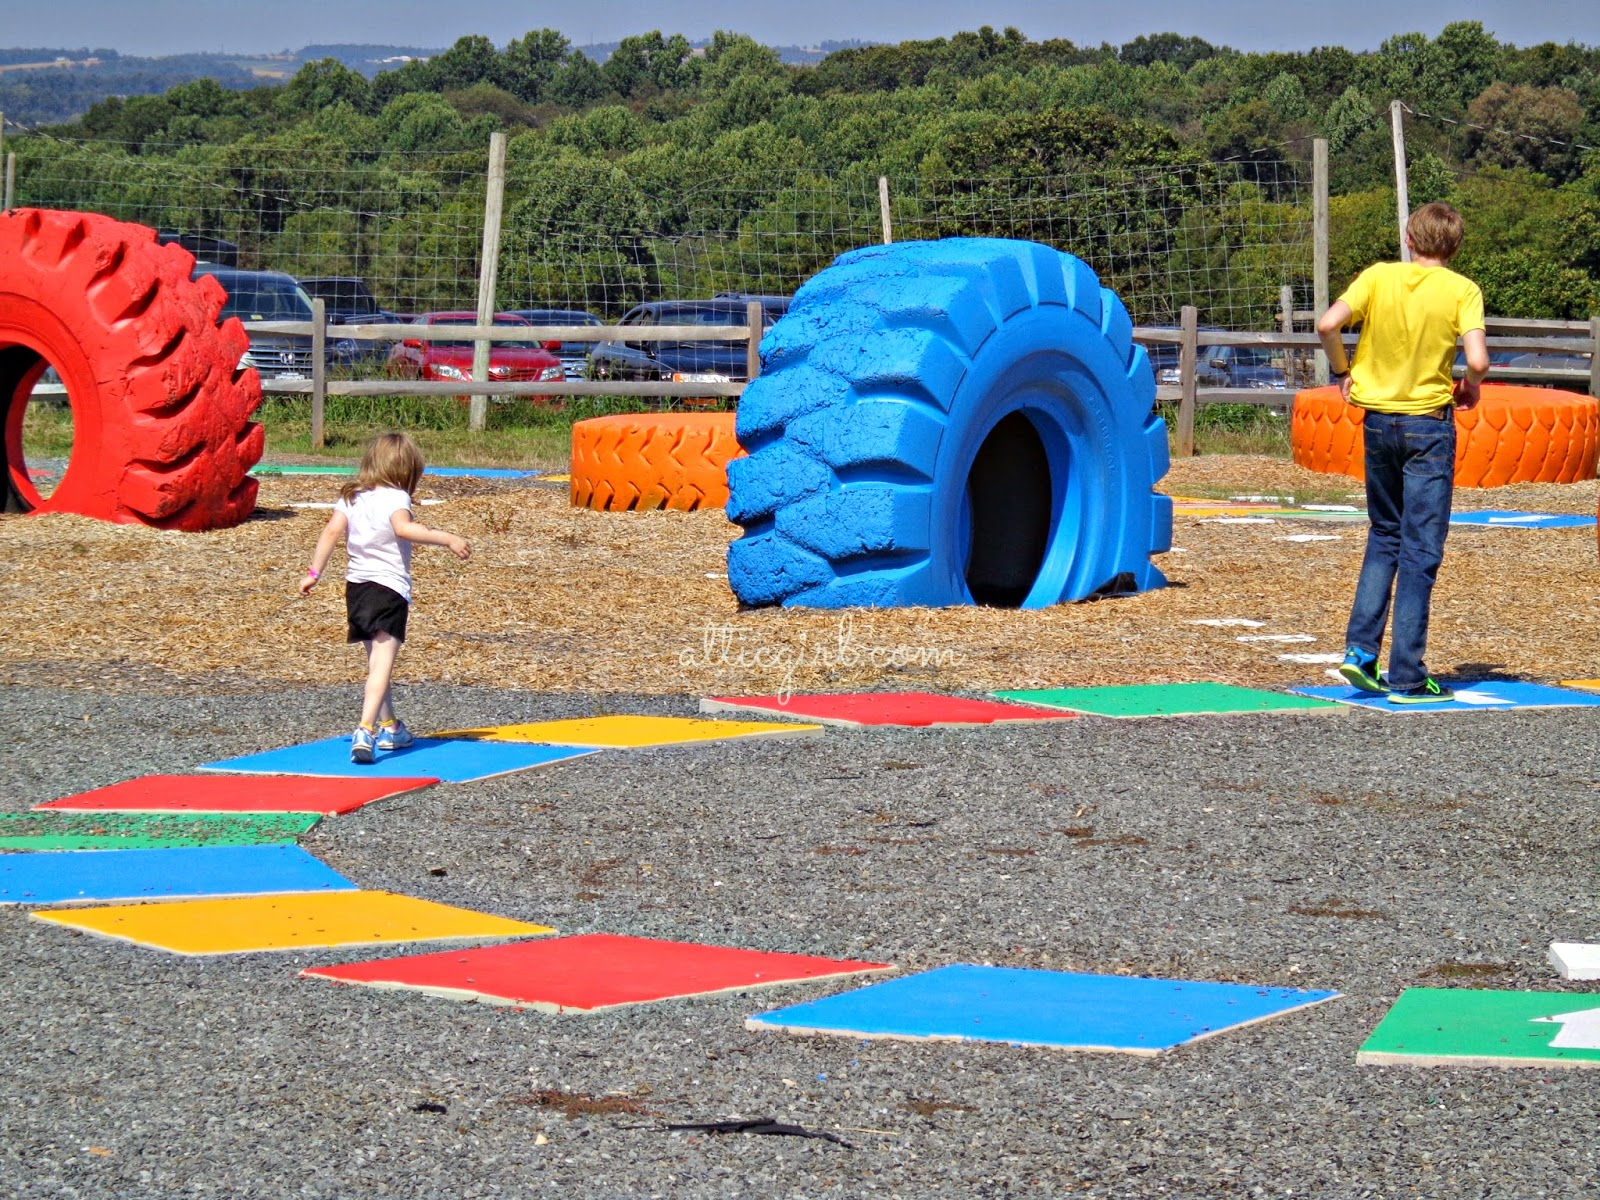 Maize Quest Fun Park